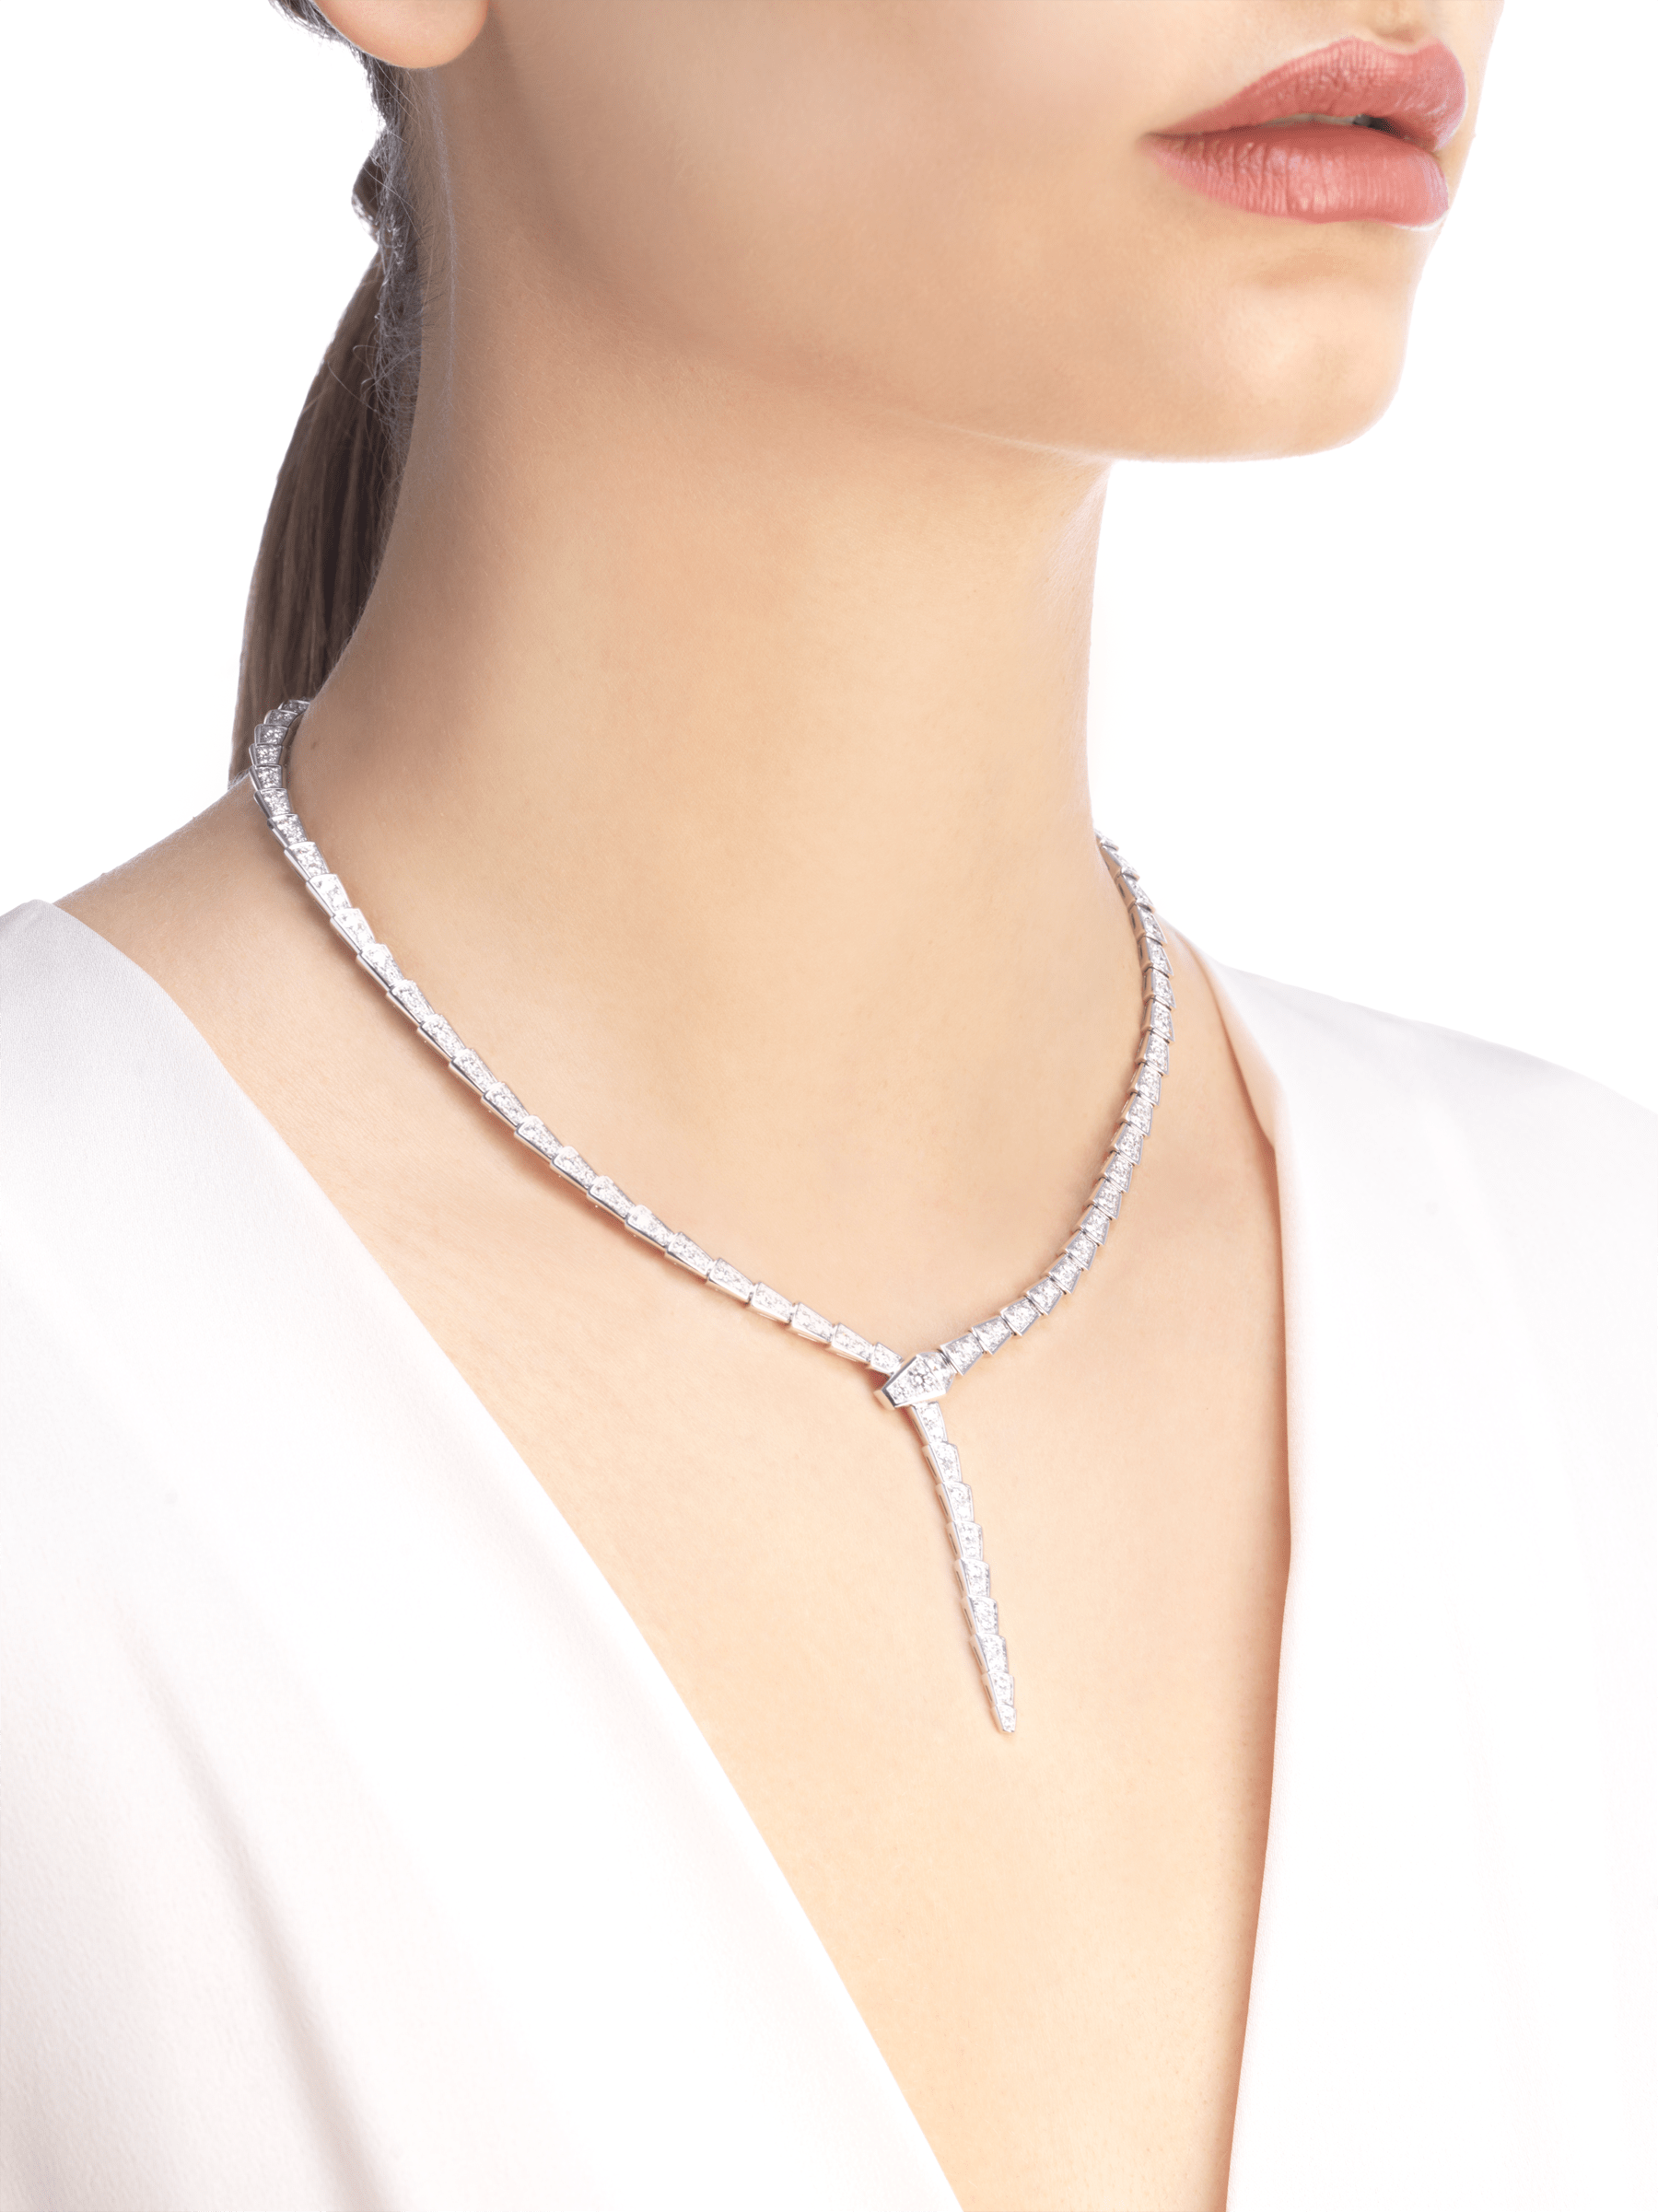 Serpenti slim necklace in 18 kt white gold, set with full pavé diamonds. 351090 image 3